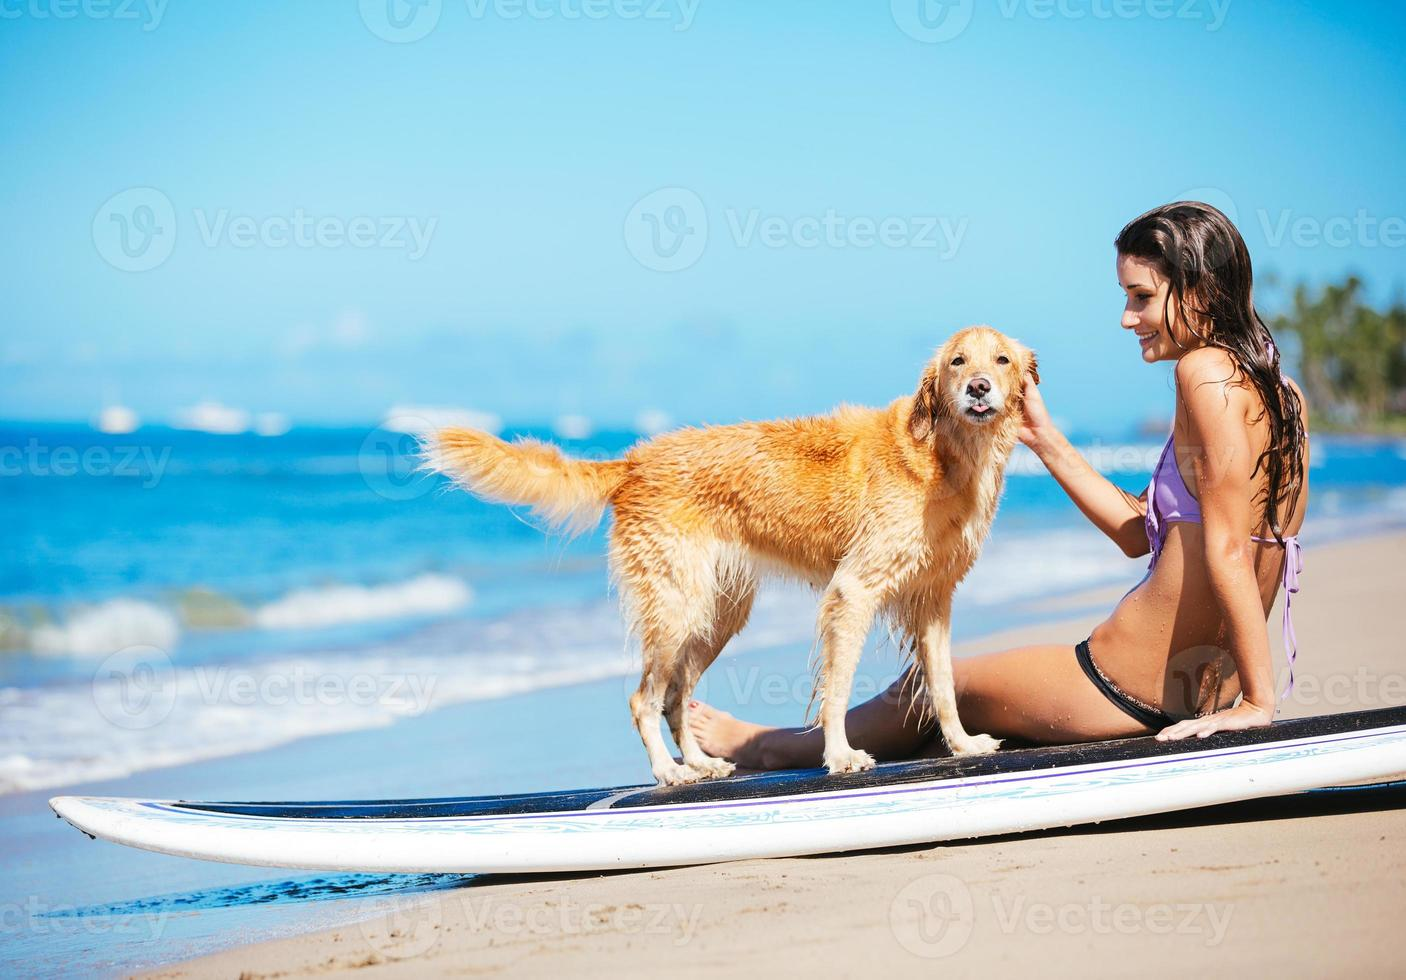 Woman Enjoying Sunny Day at the Beach with her Dog photo